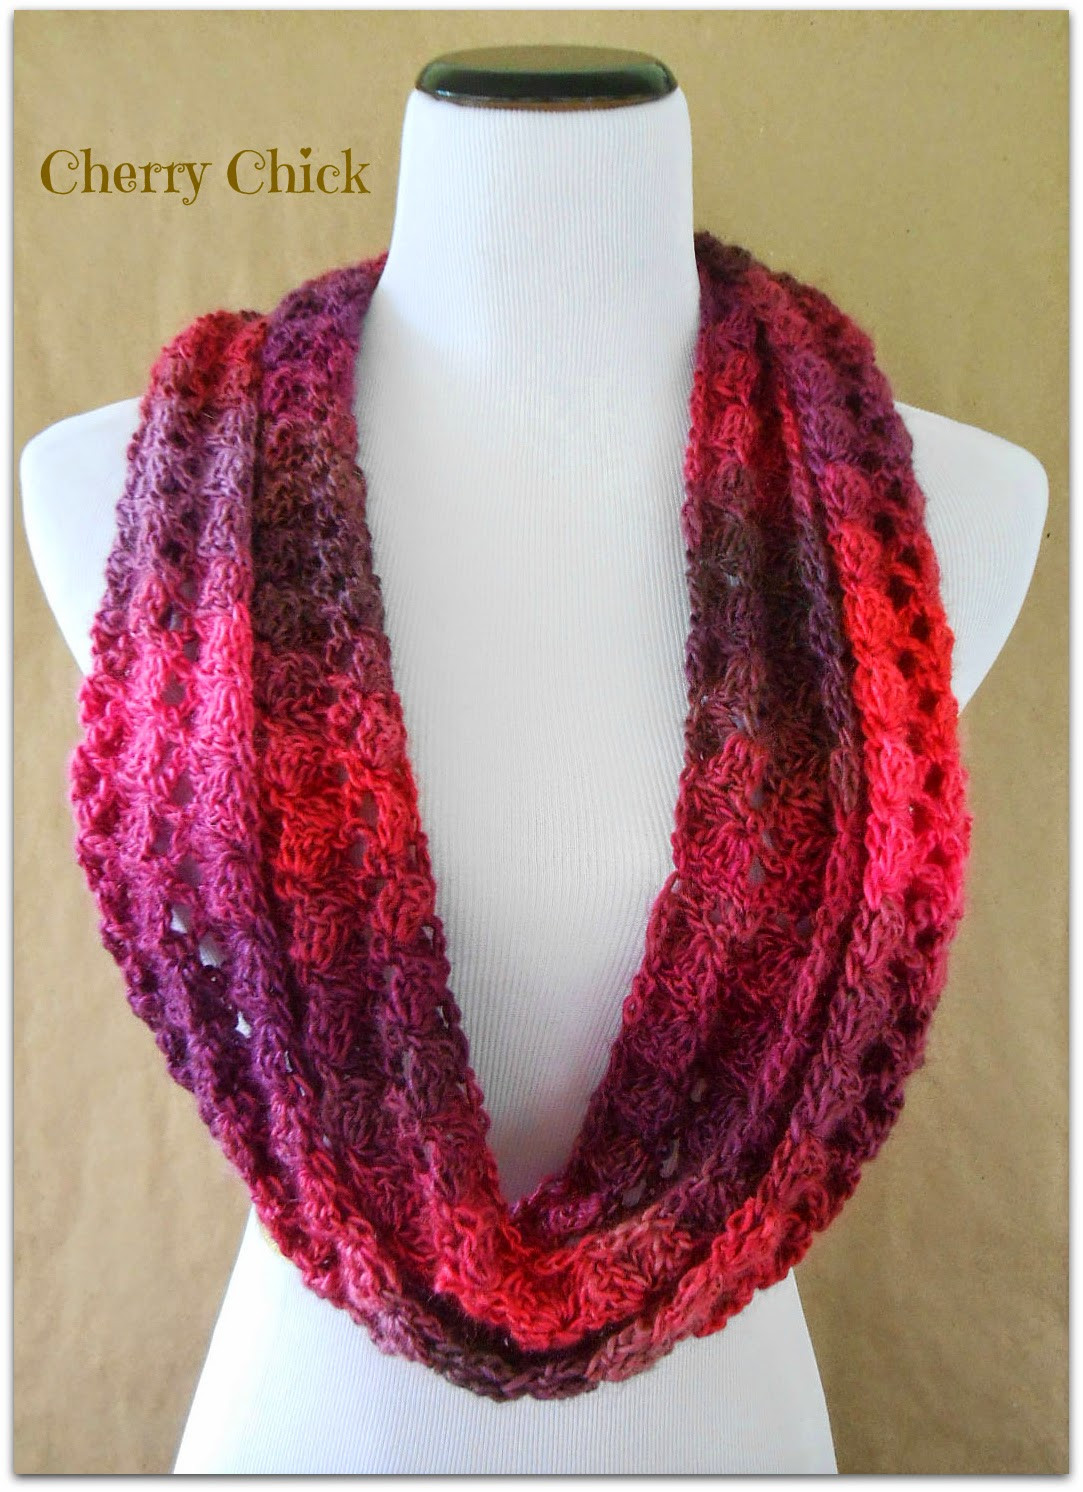 Vintage Cherry Shop New Colors Lacy Crochet Infinity Scarf